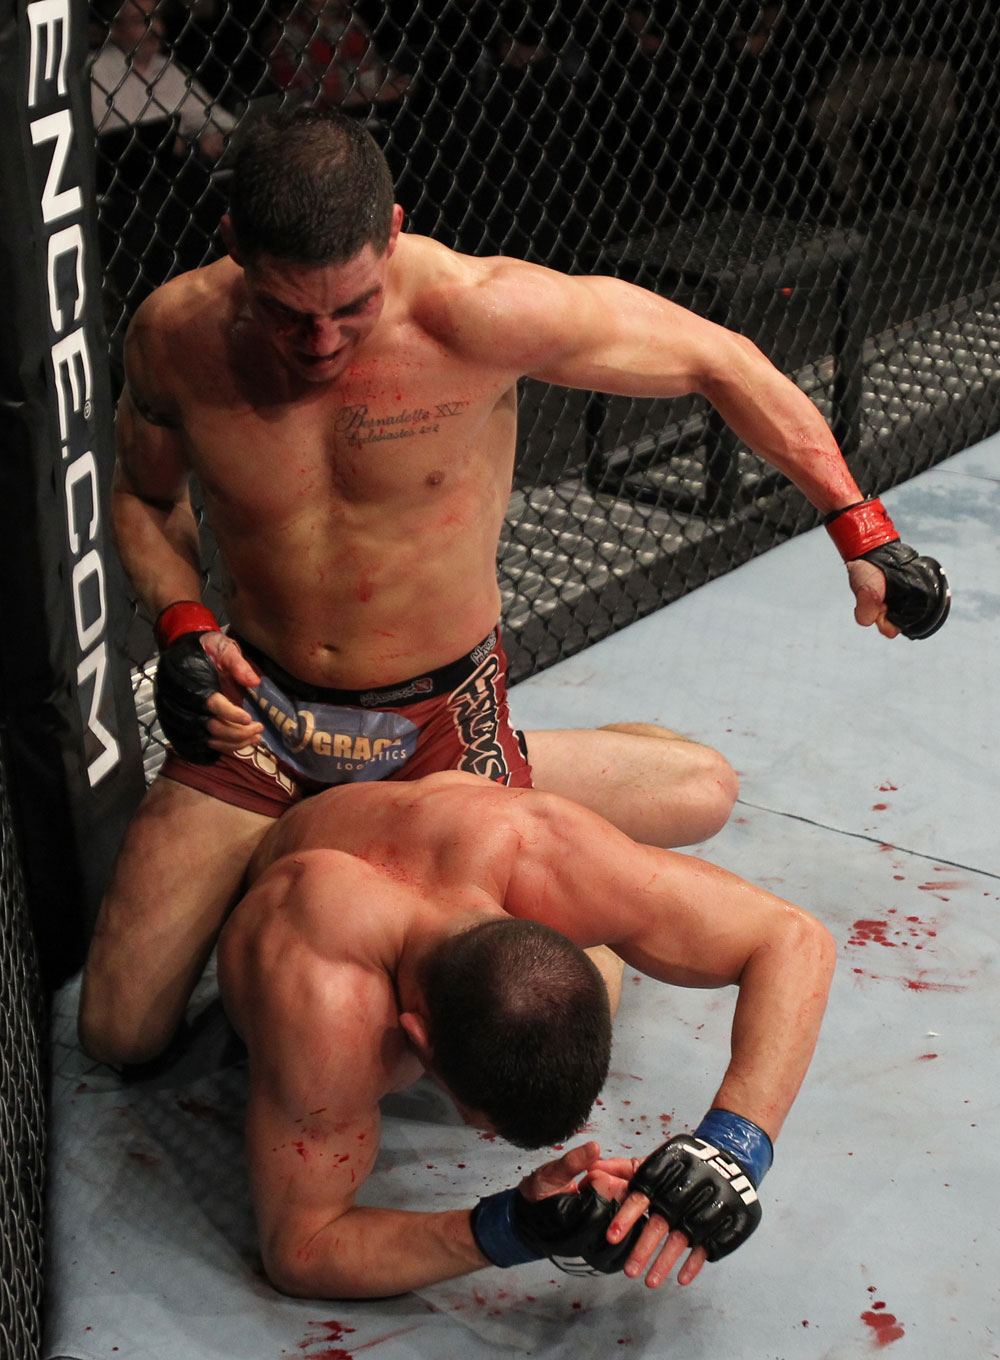 OMAHA, NE - FEBRUARY 15:  (L-R) Diego Sanchez punches Jake Ellenberger during the UFC on FUEL TV event at Omaha Civic Auditorium on February 15, 2012 in Omaha, Nebraska.  (Photo by Josh Hedges/Zuffa LLC/Zuffa LLC via Getty Images) *** Local Caption *** Jake Ellenberger; Diego Sanchez